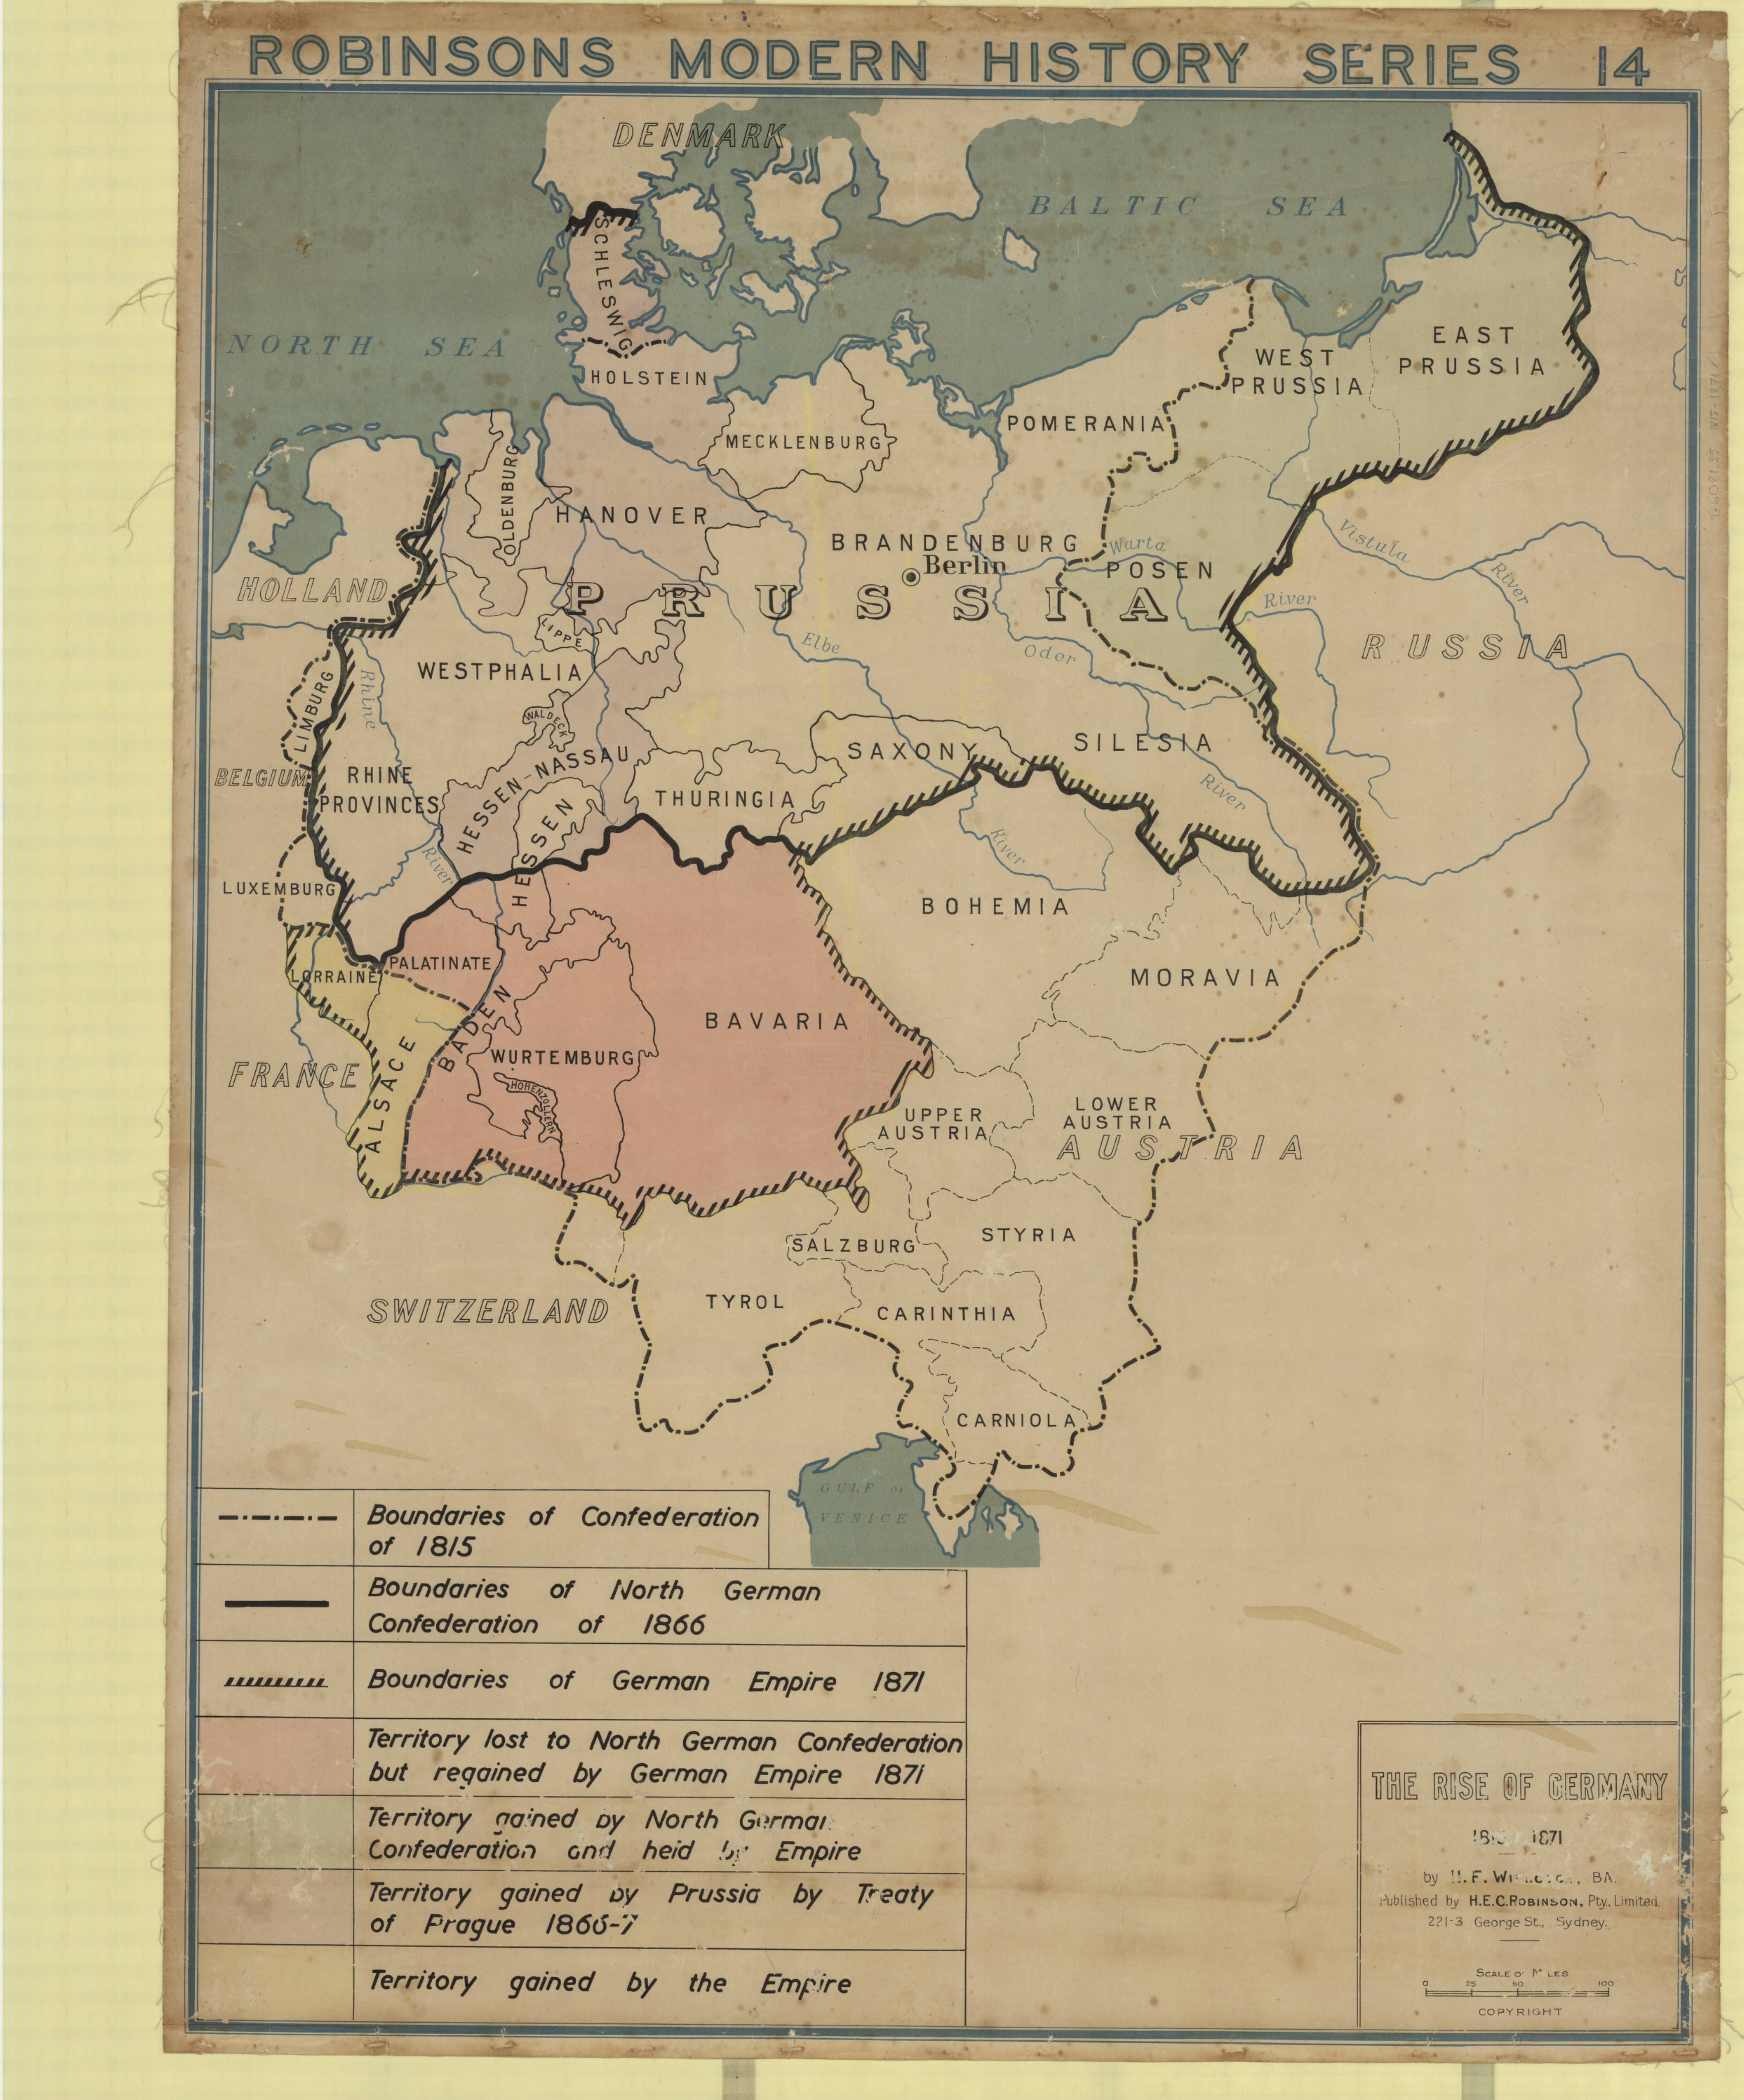 The Rise Of Germany 1815 1871 Published In The Early 20th